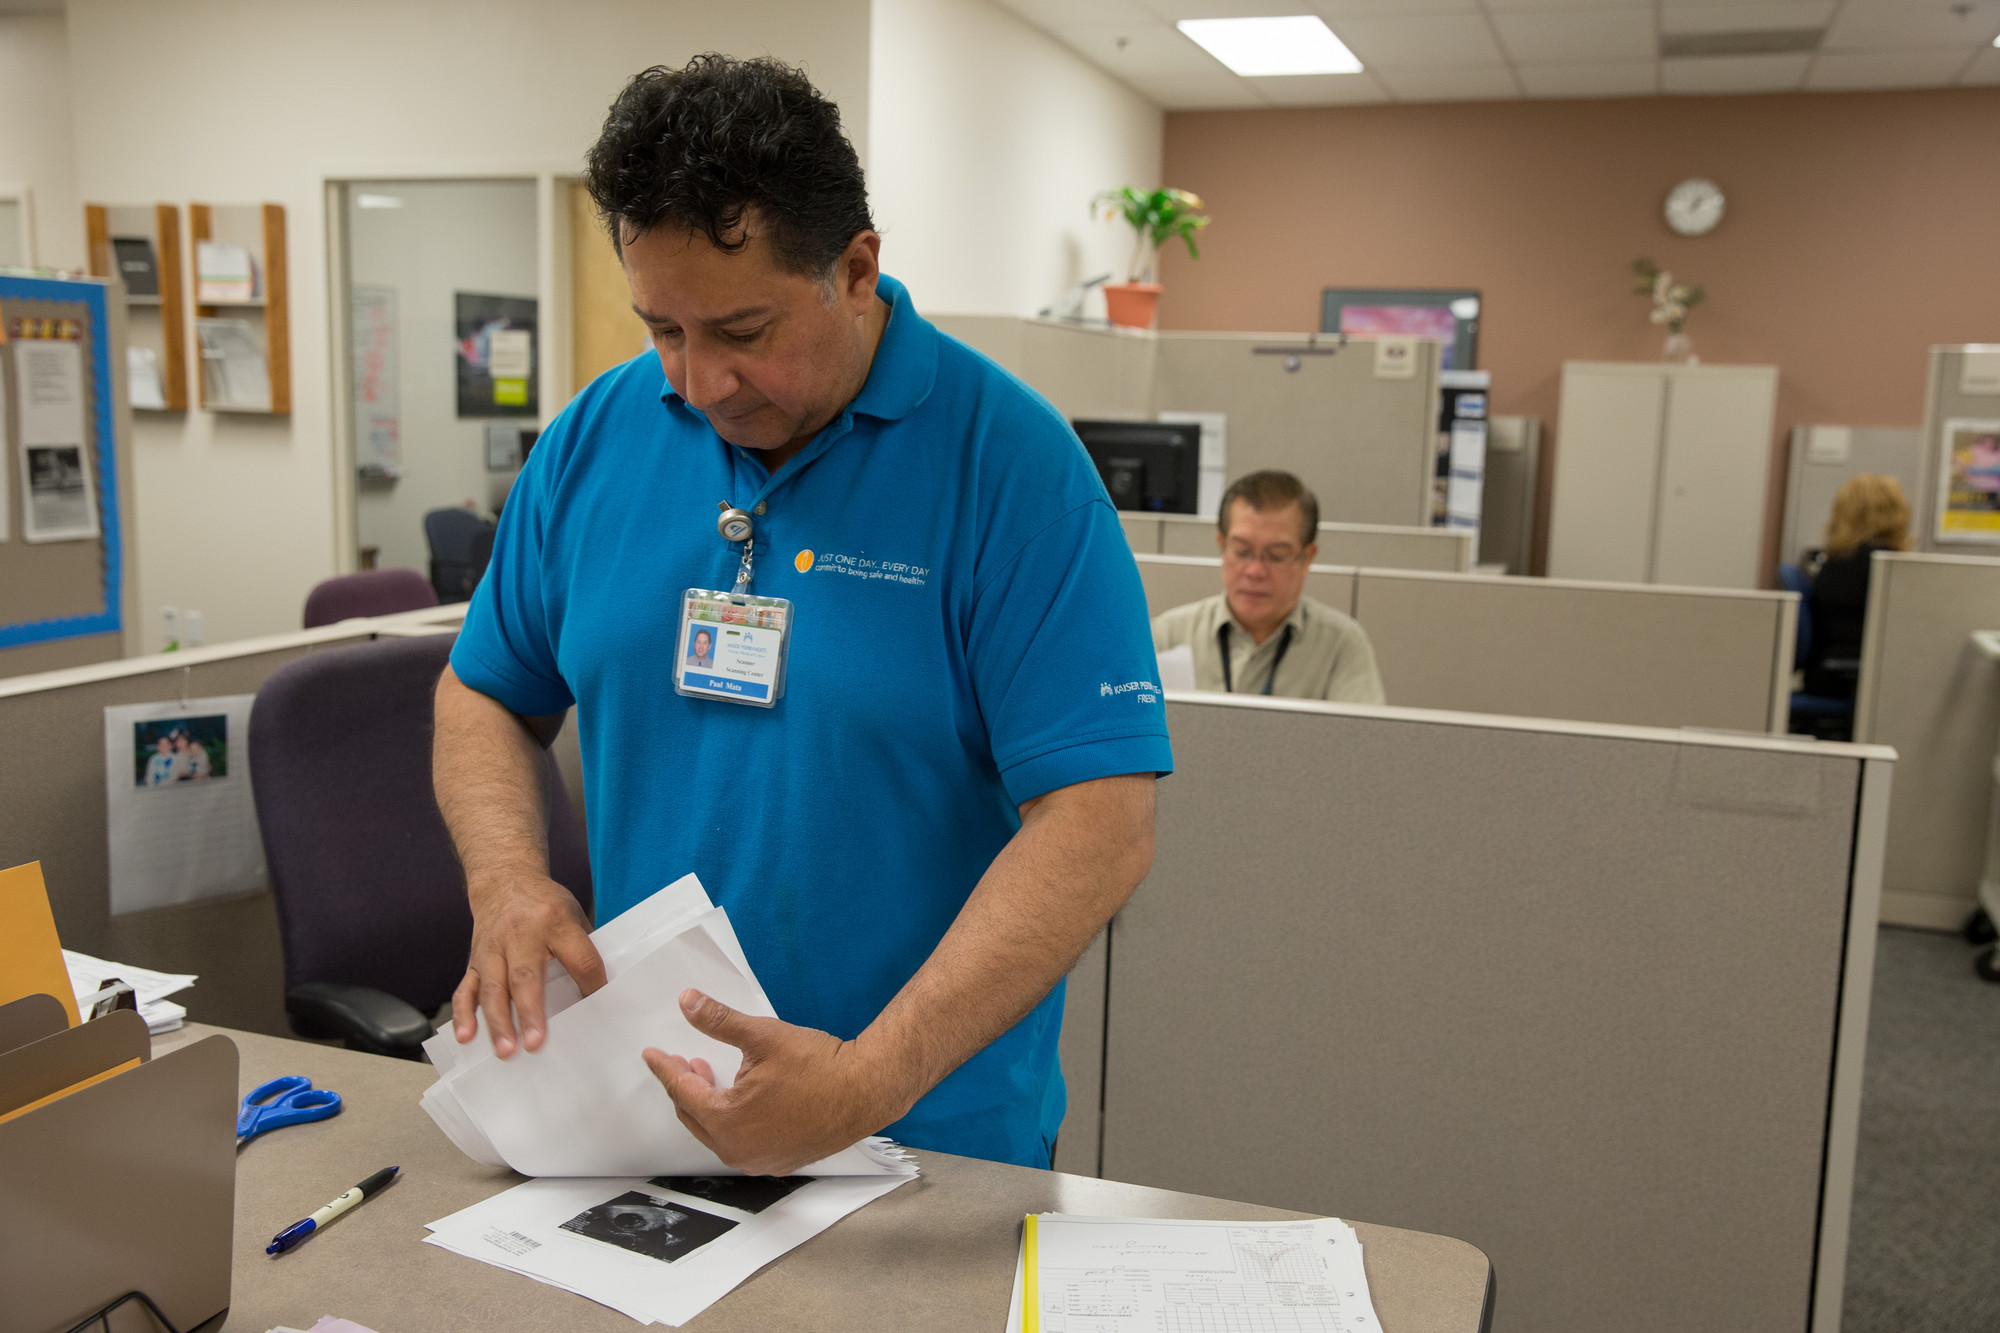 Scanning Center. Scanner Paul Mata. SEIU